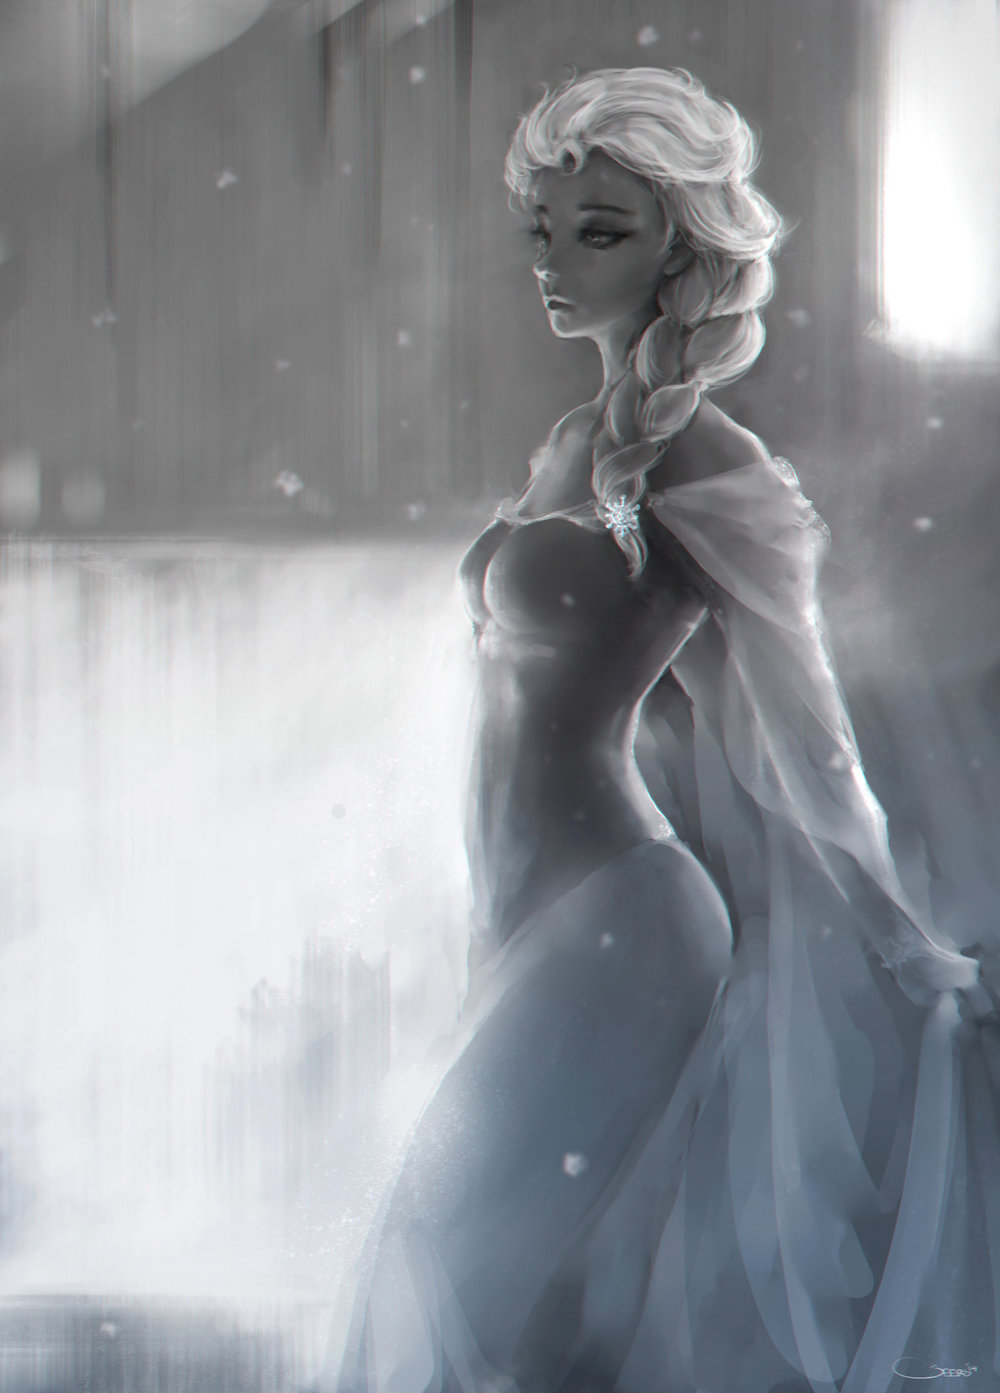 elsa_by_darrengeers-d72elst.jpg